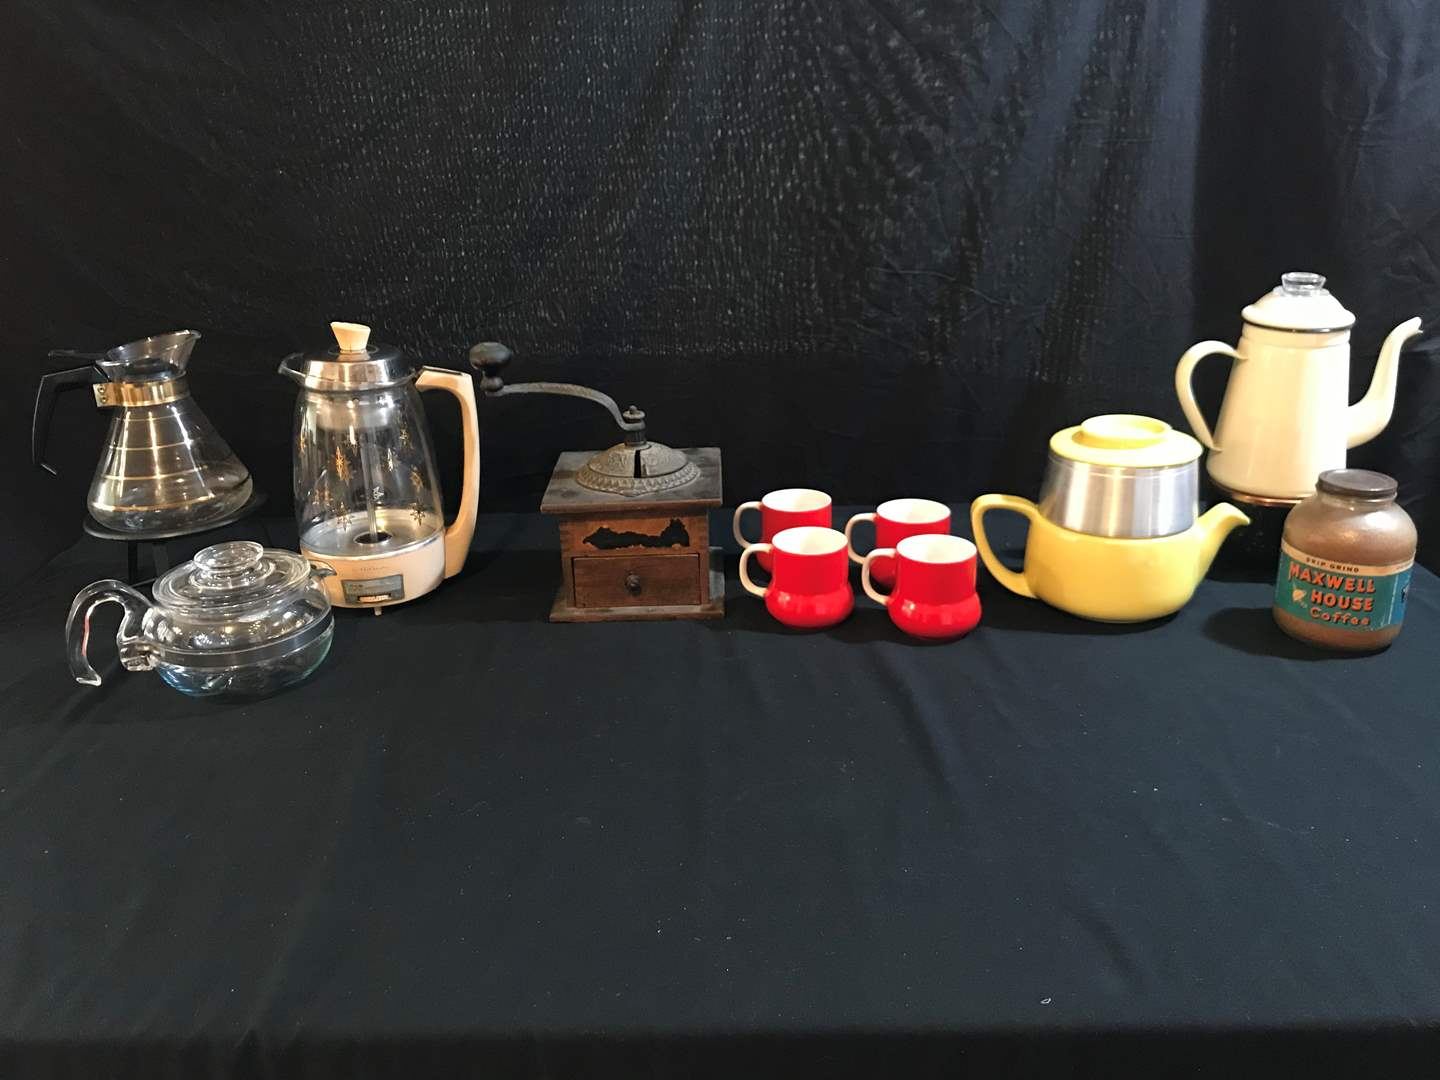 Lot # 83 - Vintage Pyrex Coffee Pot, Vintage Imperial Coffee Grinder, Coffee Mugs, & More.. (main image)